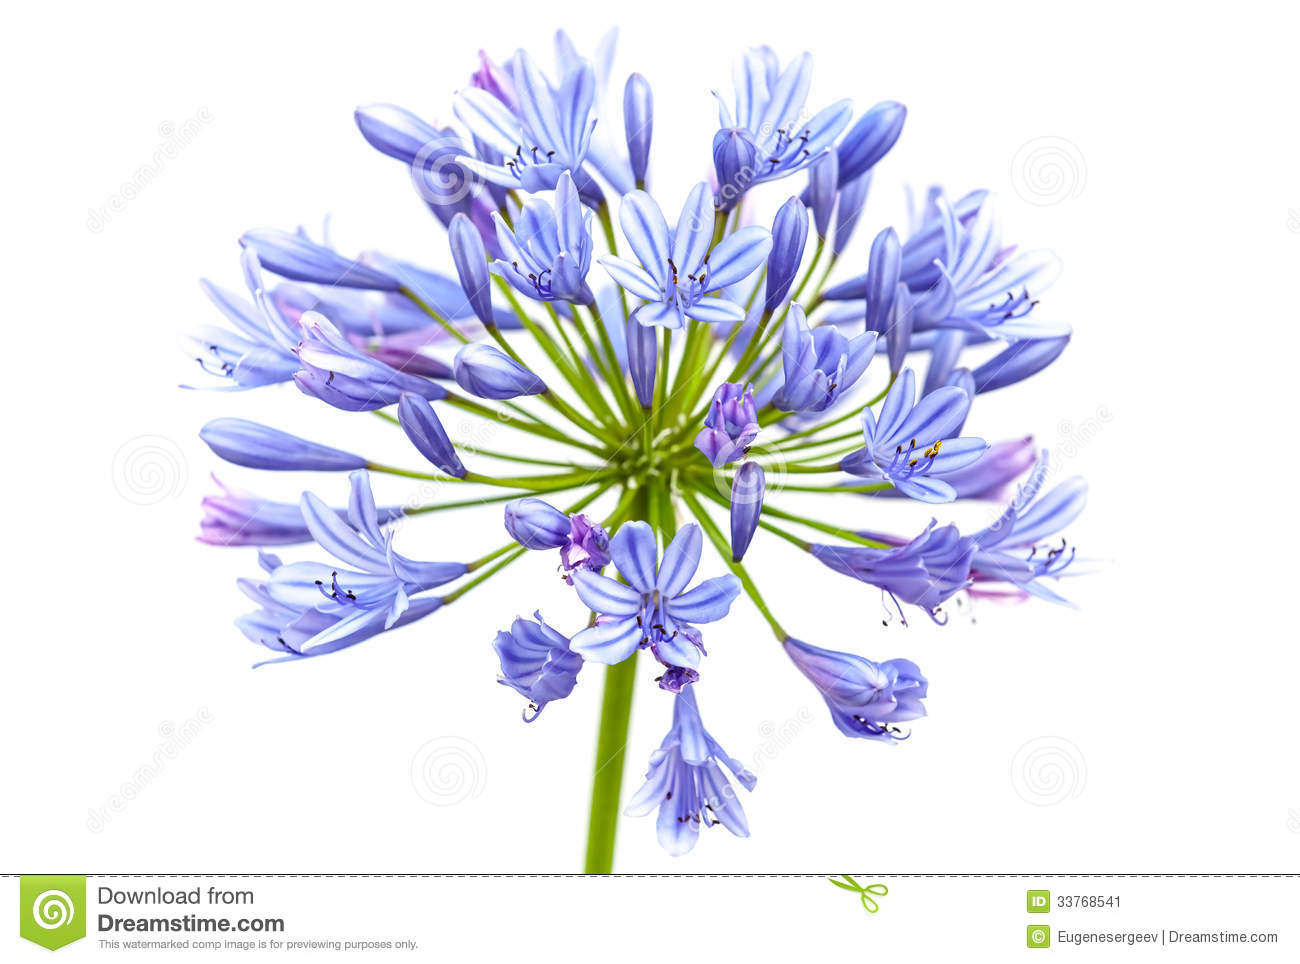 Agapanthus Flower Stock Photo.